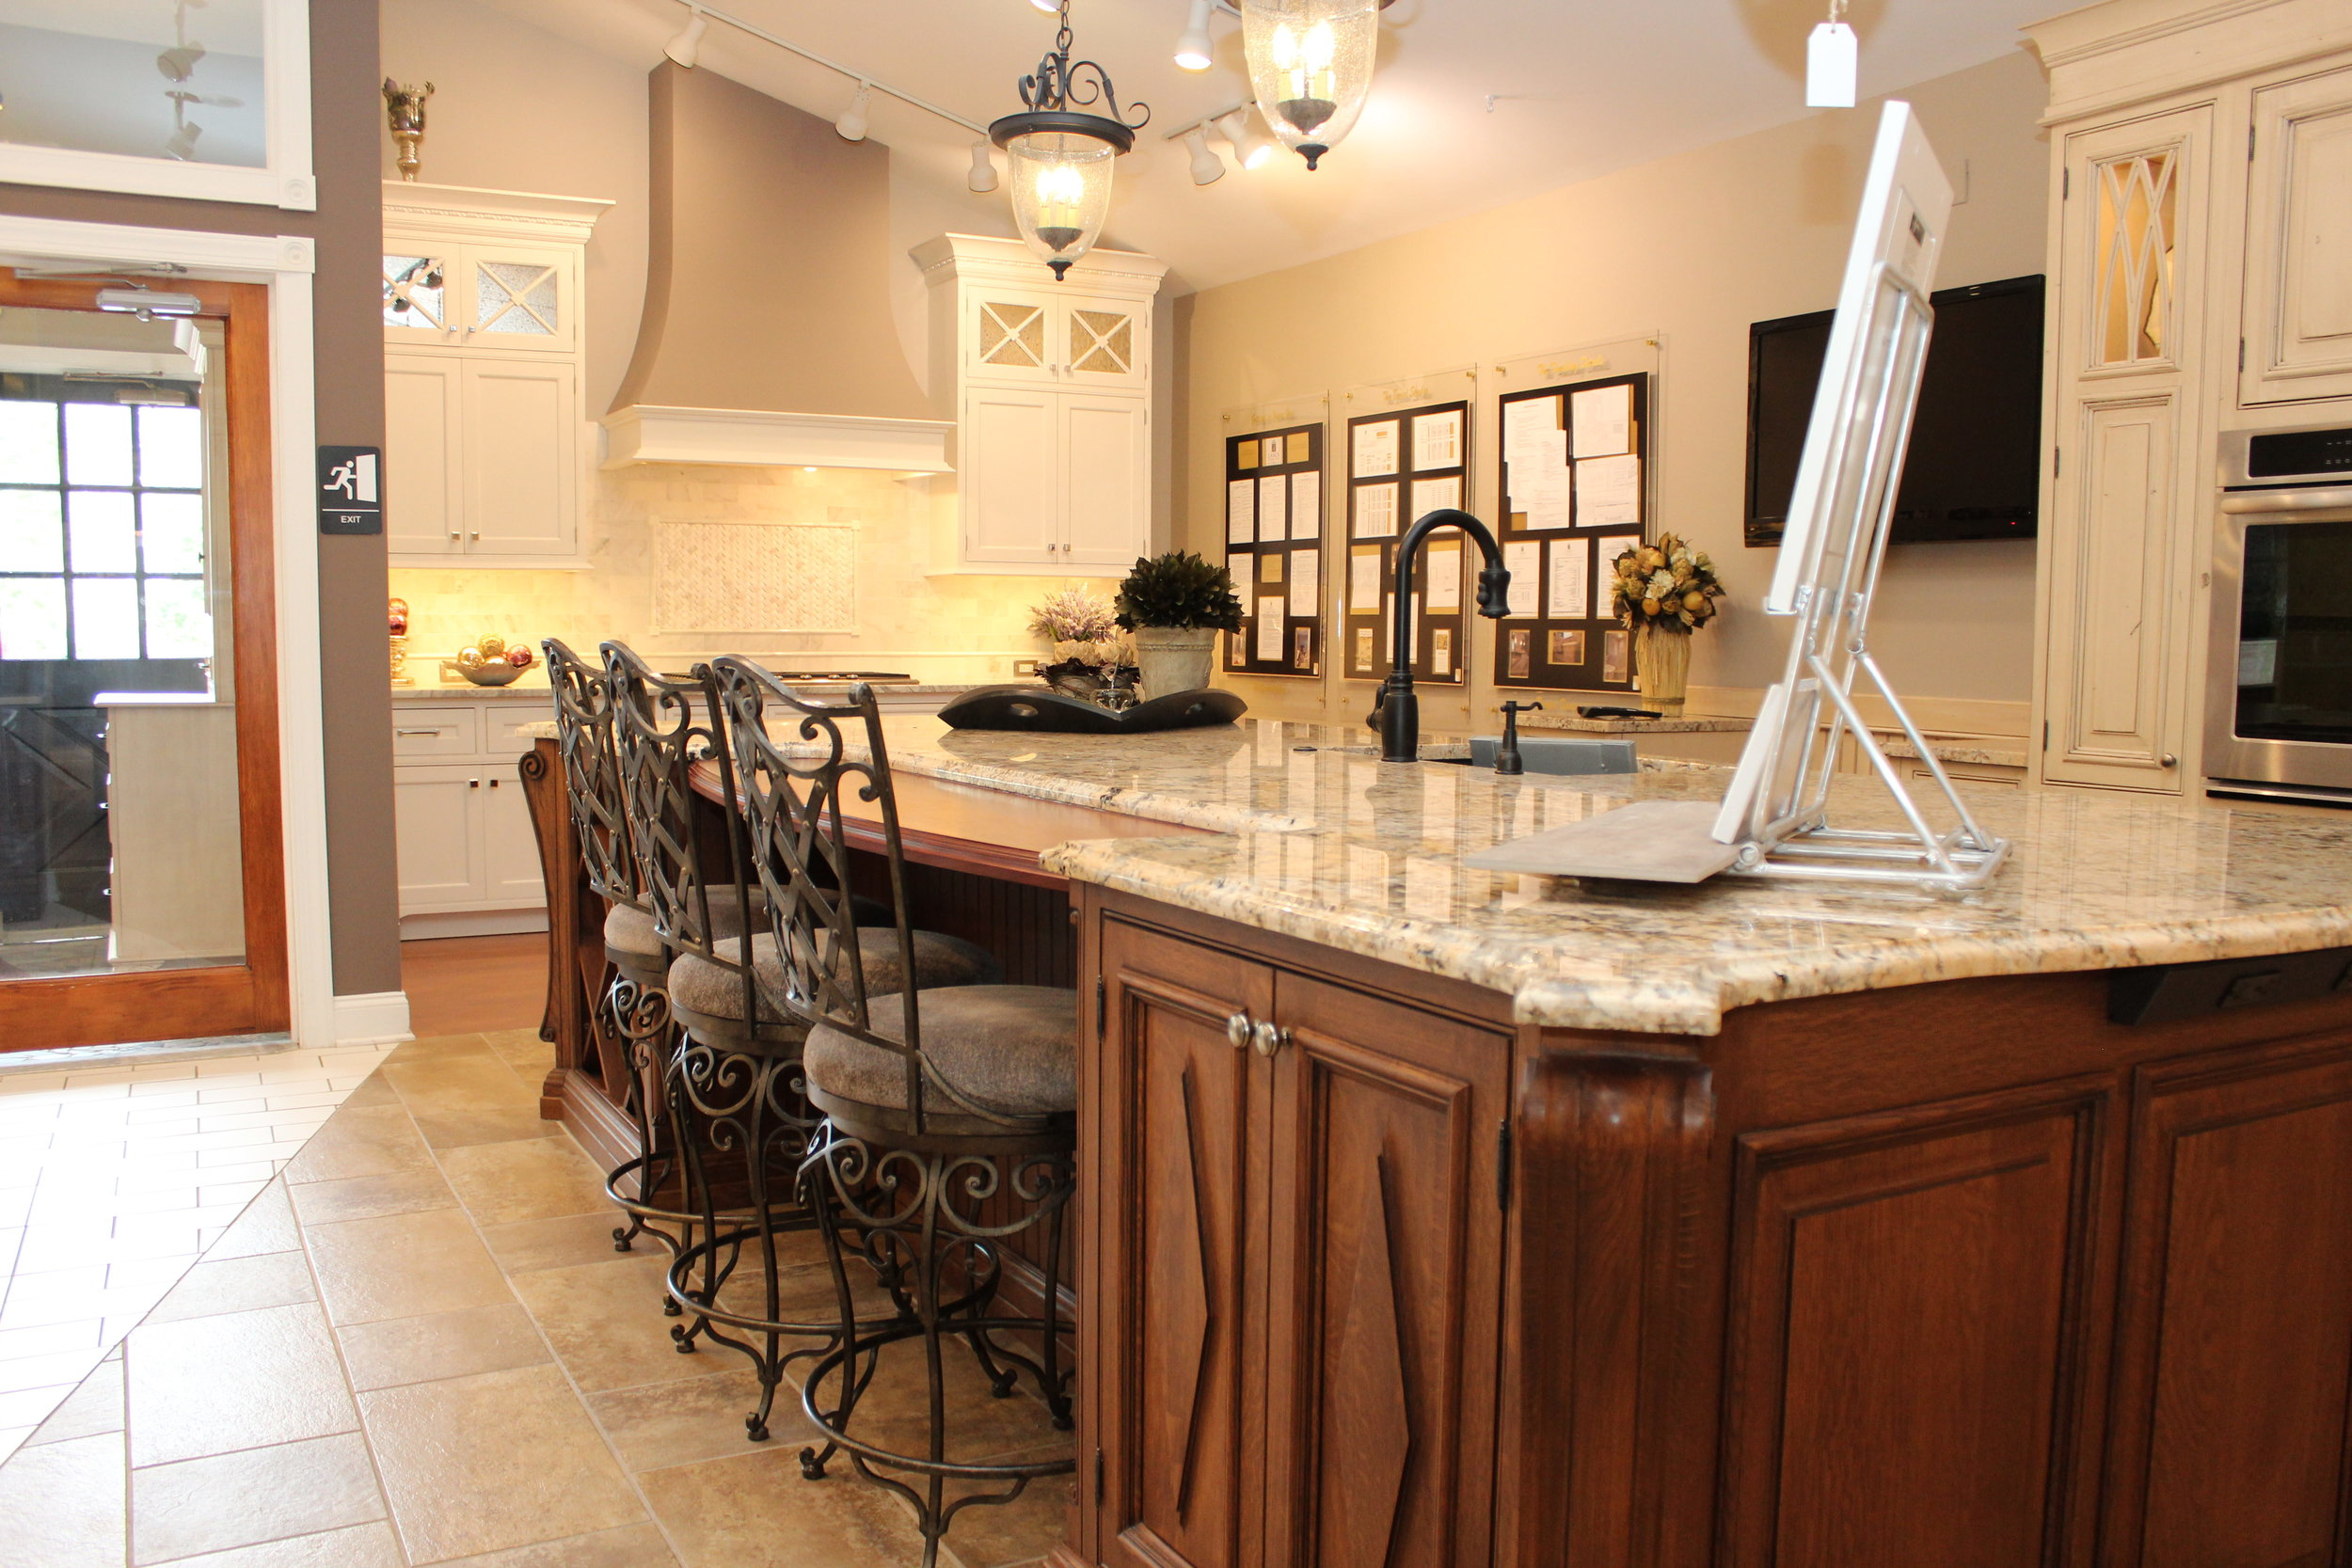 Stop By Our Showroom in Newtown, PA - 440 East Centre AvenueNewtown, PA 18940